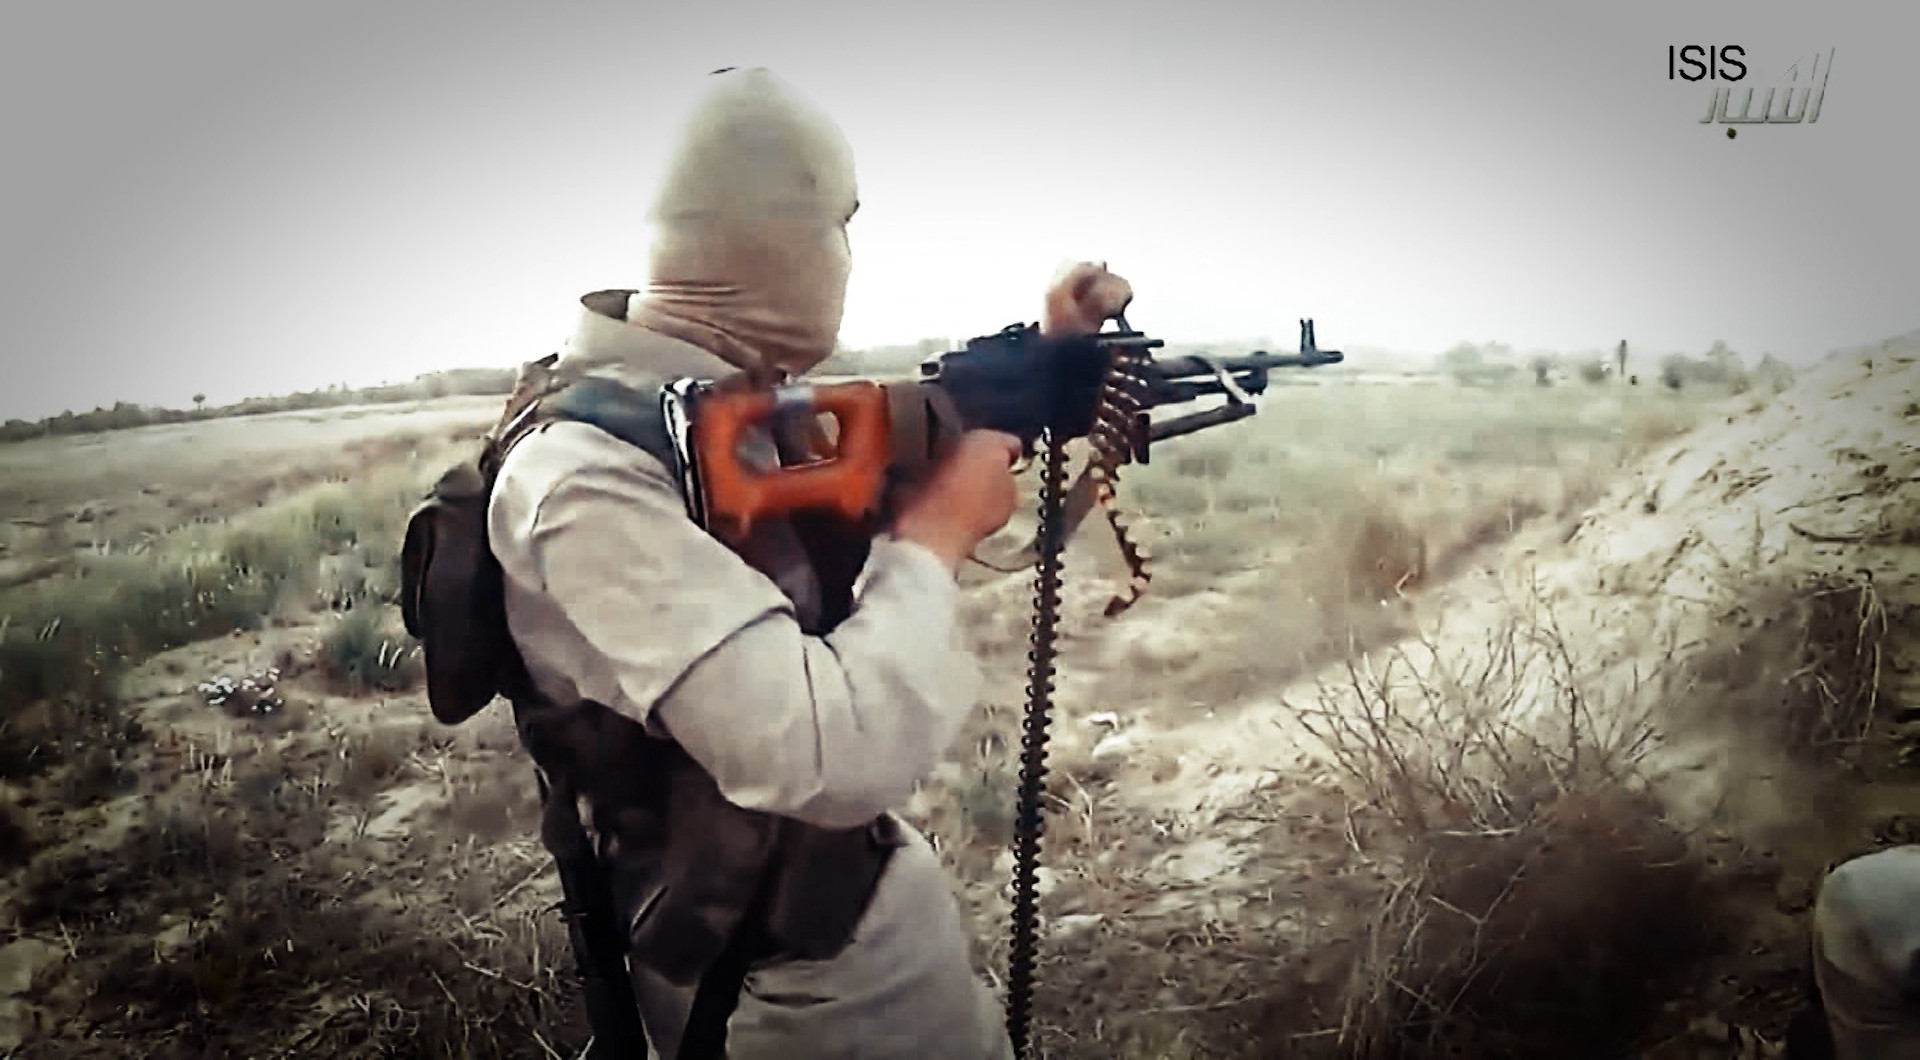 Shotgun Commercial Isis